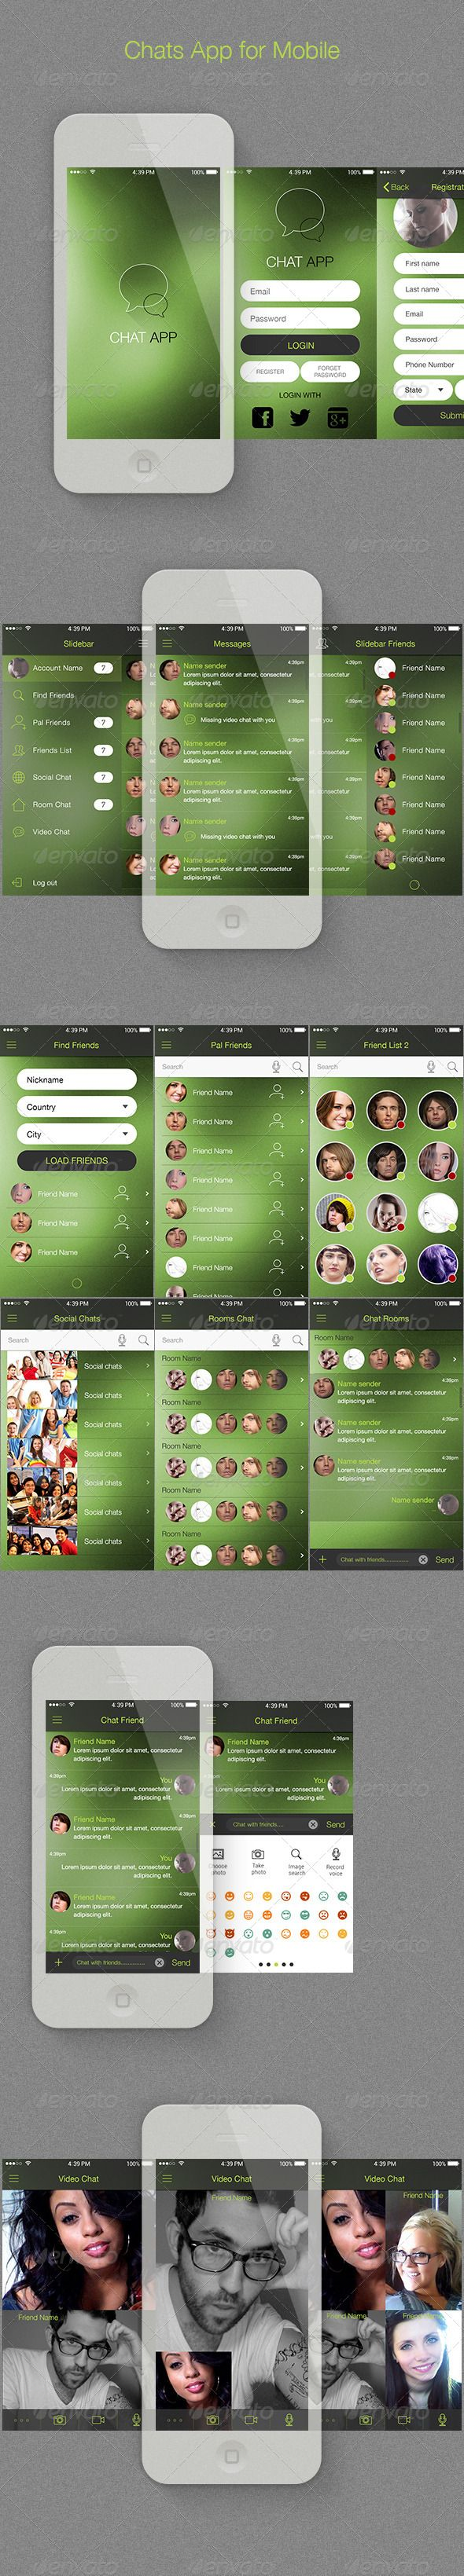 Chat App for Mobile #GraphicRiver + 19 psd file included: 01_Spash Screen 02_Login 03_Registration 04_Chose Location 05_Slidebar 06_Slidebar Friends 07_Messages 08_Messages Action 09_Find Friend 10_Pal Friend 11_Friend List 12_Friend List 2 13_Friend List 2 Action 14_Social Chats 15_Room Chats 16_Room Chat Detial 17_Chat Friend 18_Chat & Attac Control 19_Video Chat + Features: Good idea for Your Chats App. Consistent with trends minimalist. PSD well organized, with layers and groups. Modern…